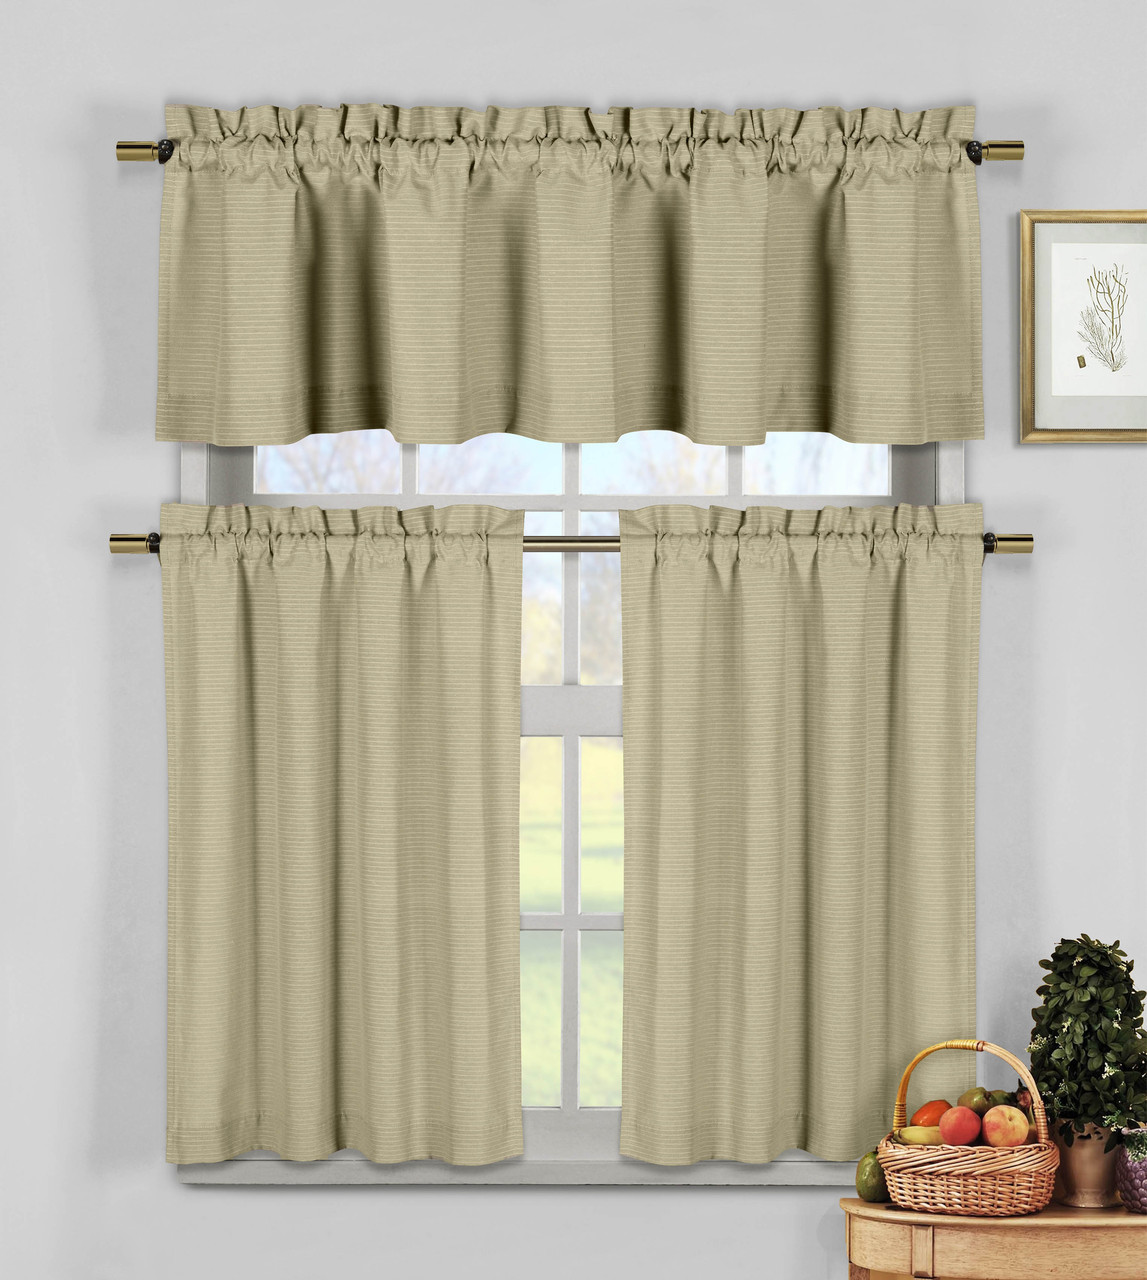 Fabric For Kitchen Curtain: Taupe 3 Pc Kitchen Window Curtain Set: Natural Cotton Blend Fabric, 1 Valance, 2 Tiers Plus